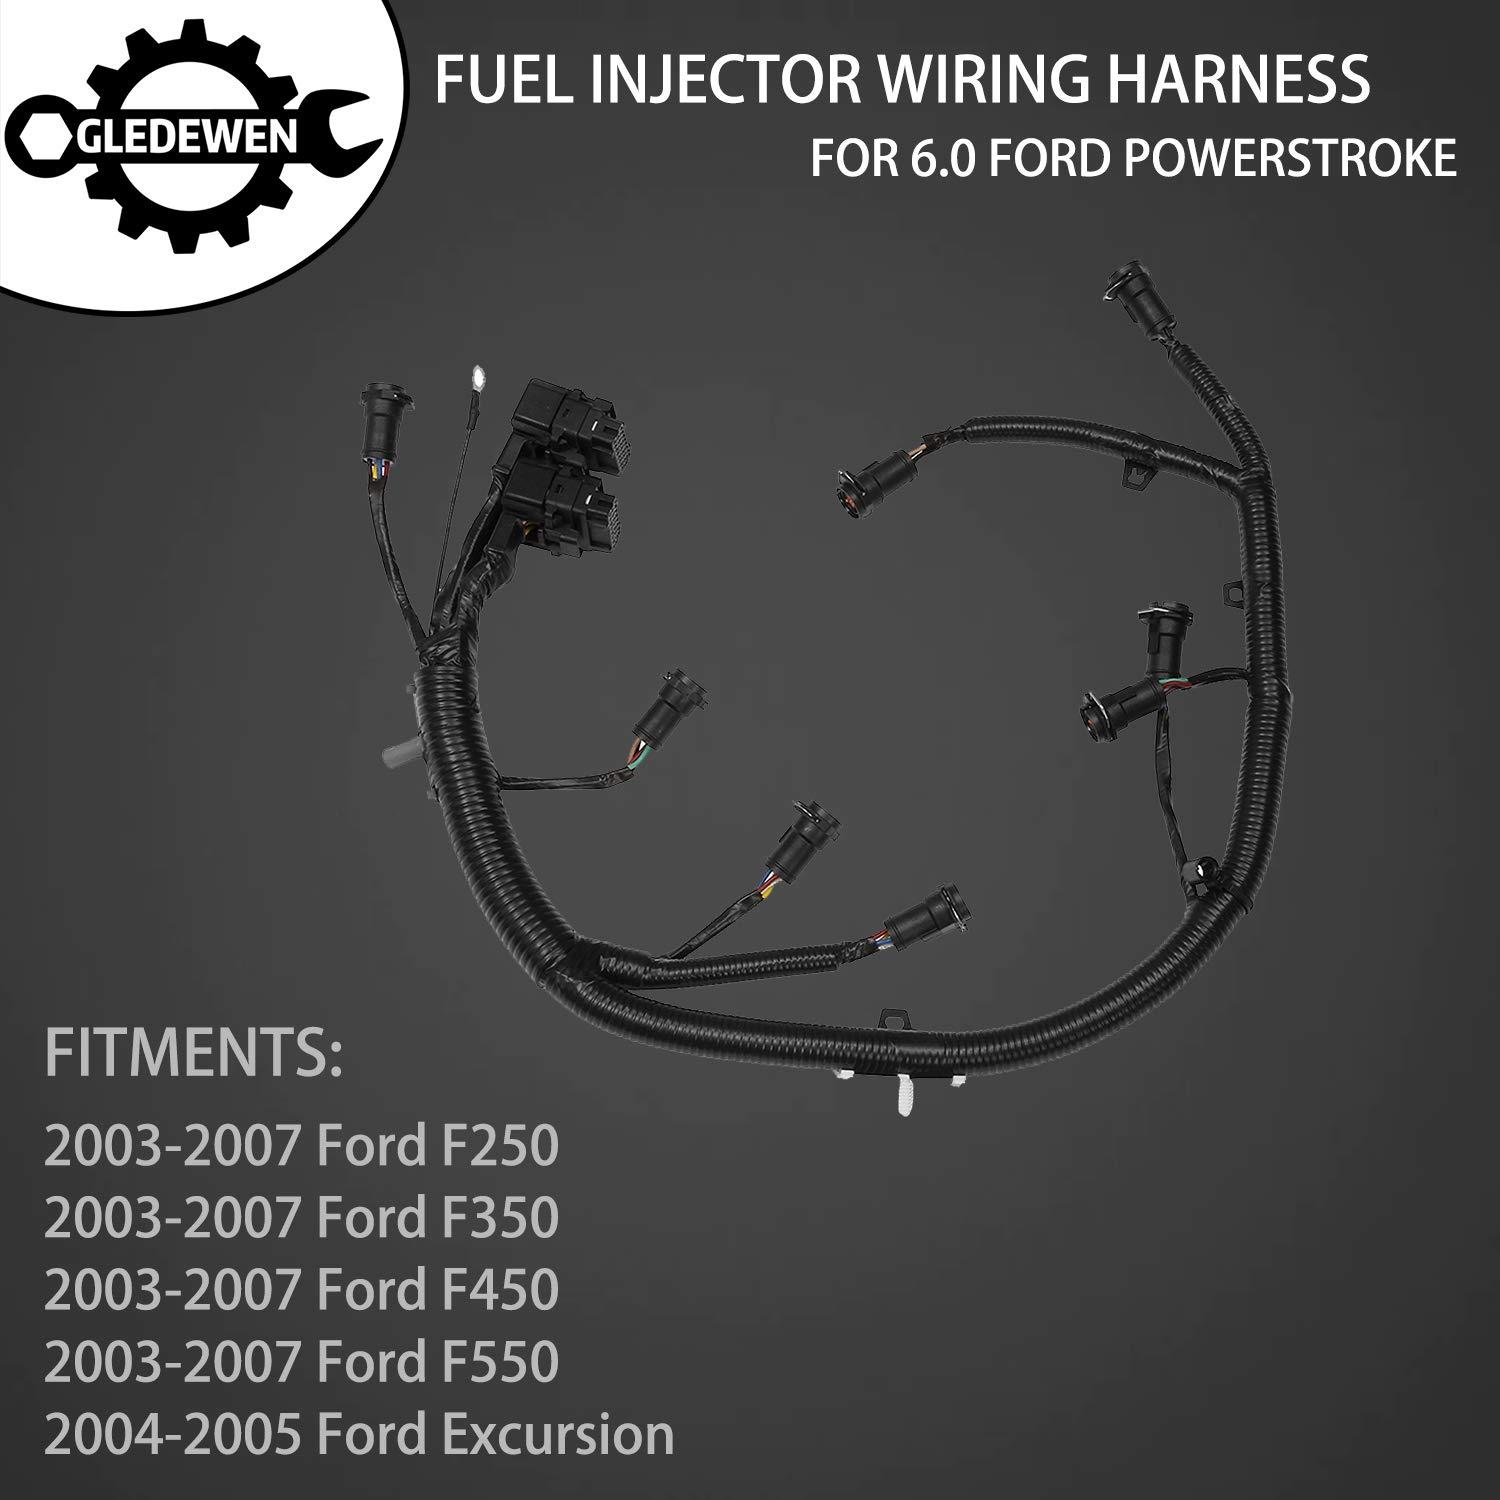 Amazon.com: FICM Engine Fuel Injector Complete Wiring ... on